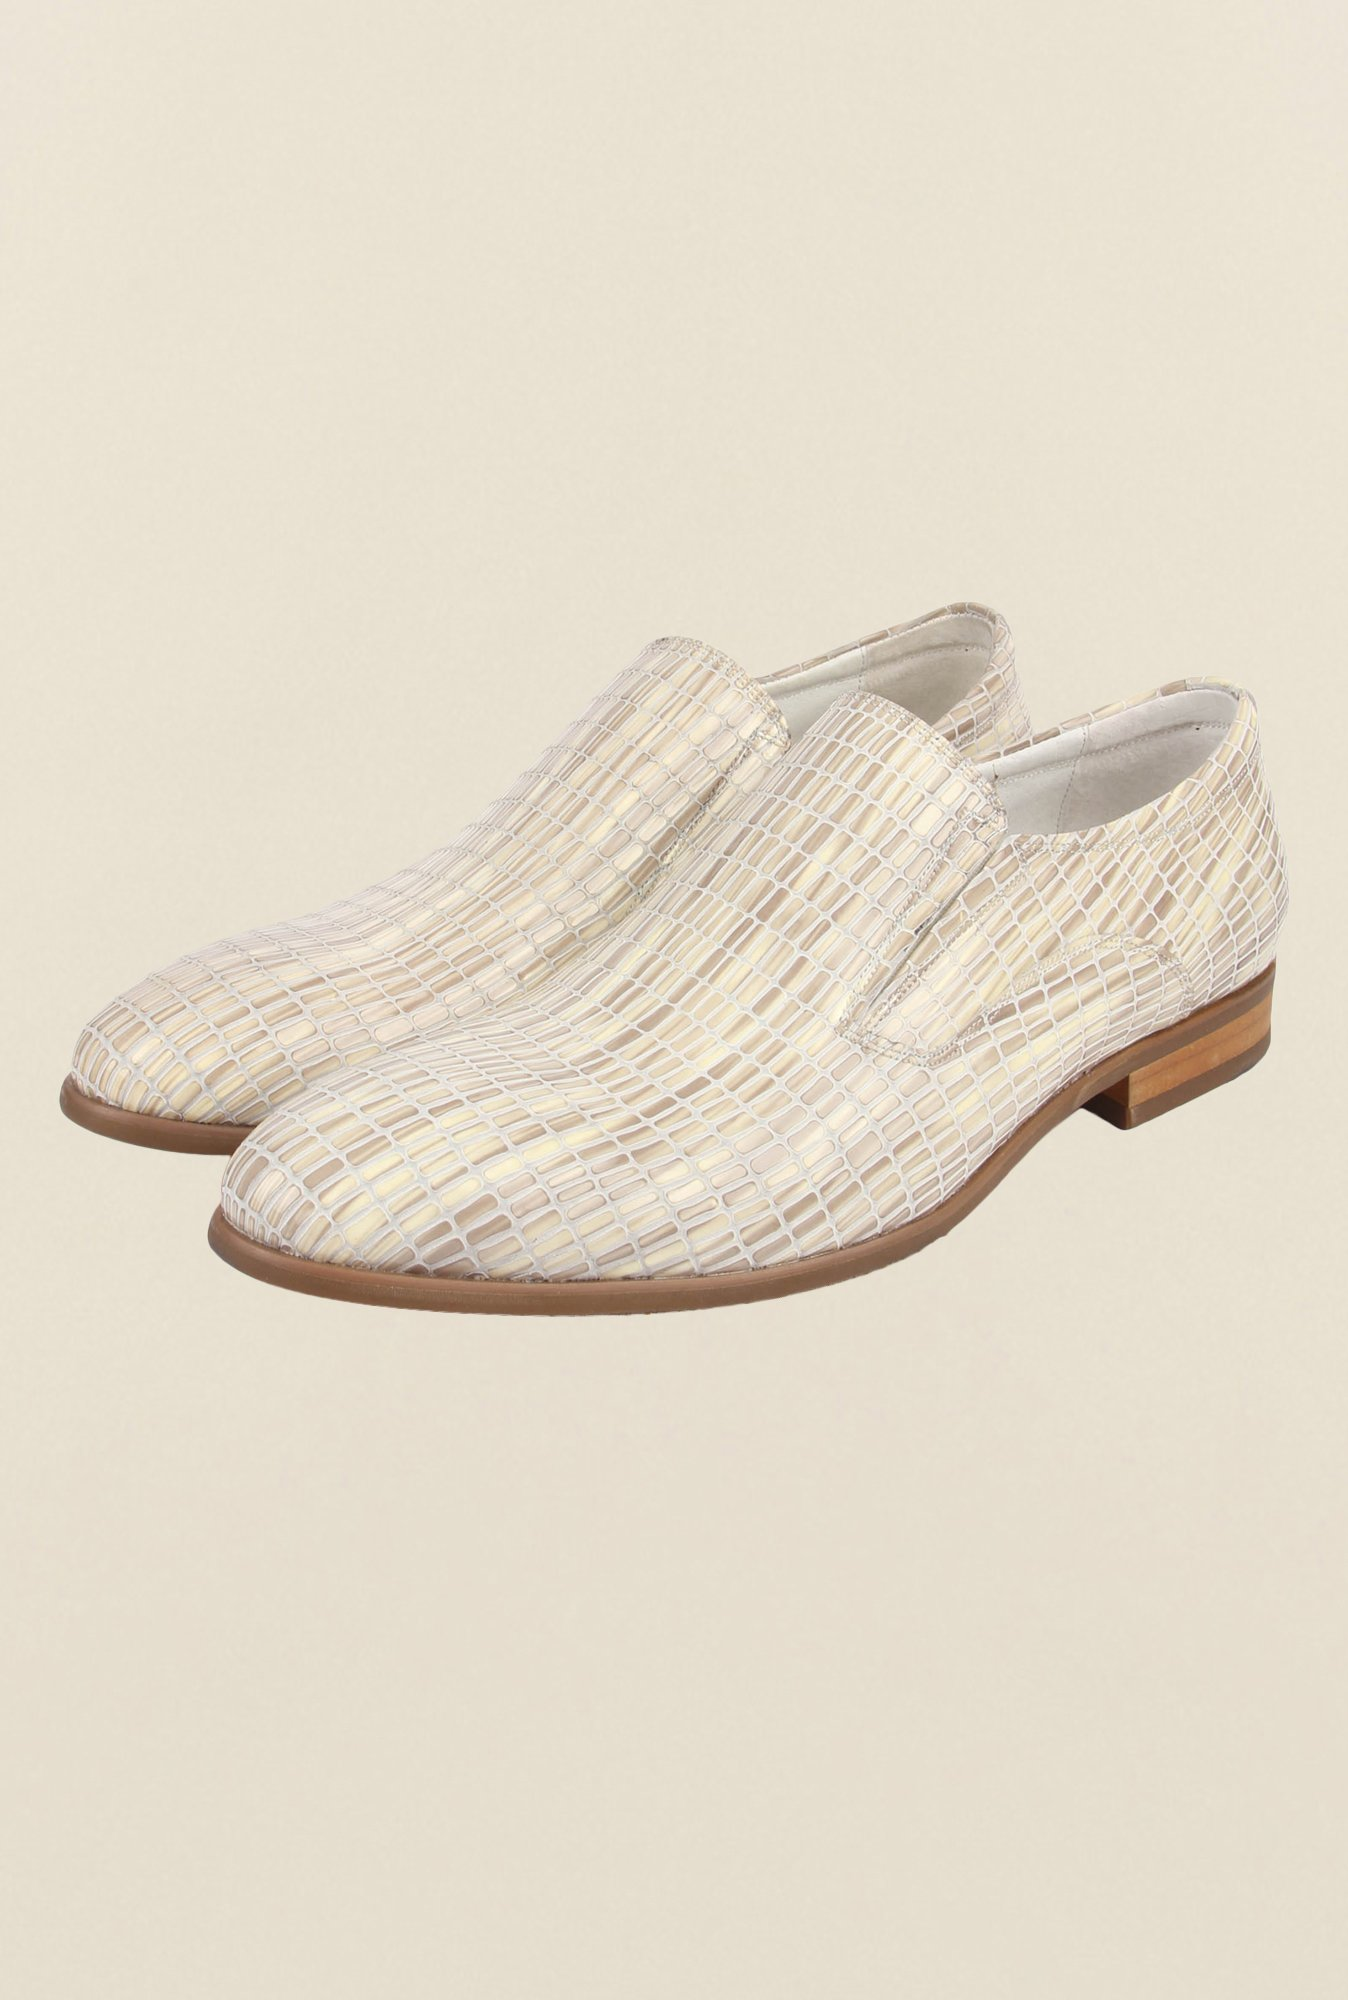 Cobblerz Beige Leather Slip-On Shoes